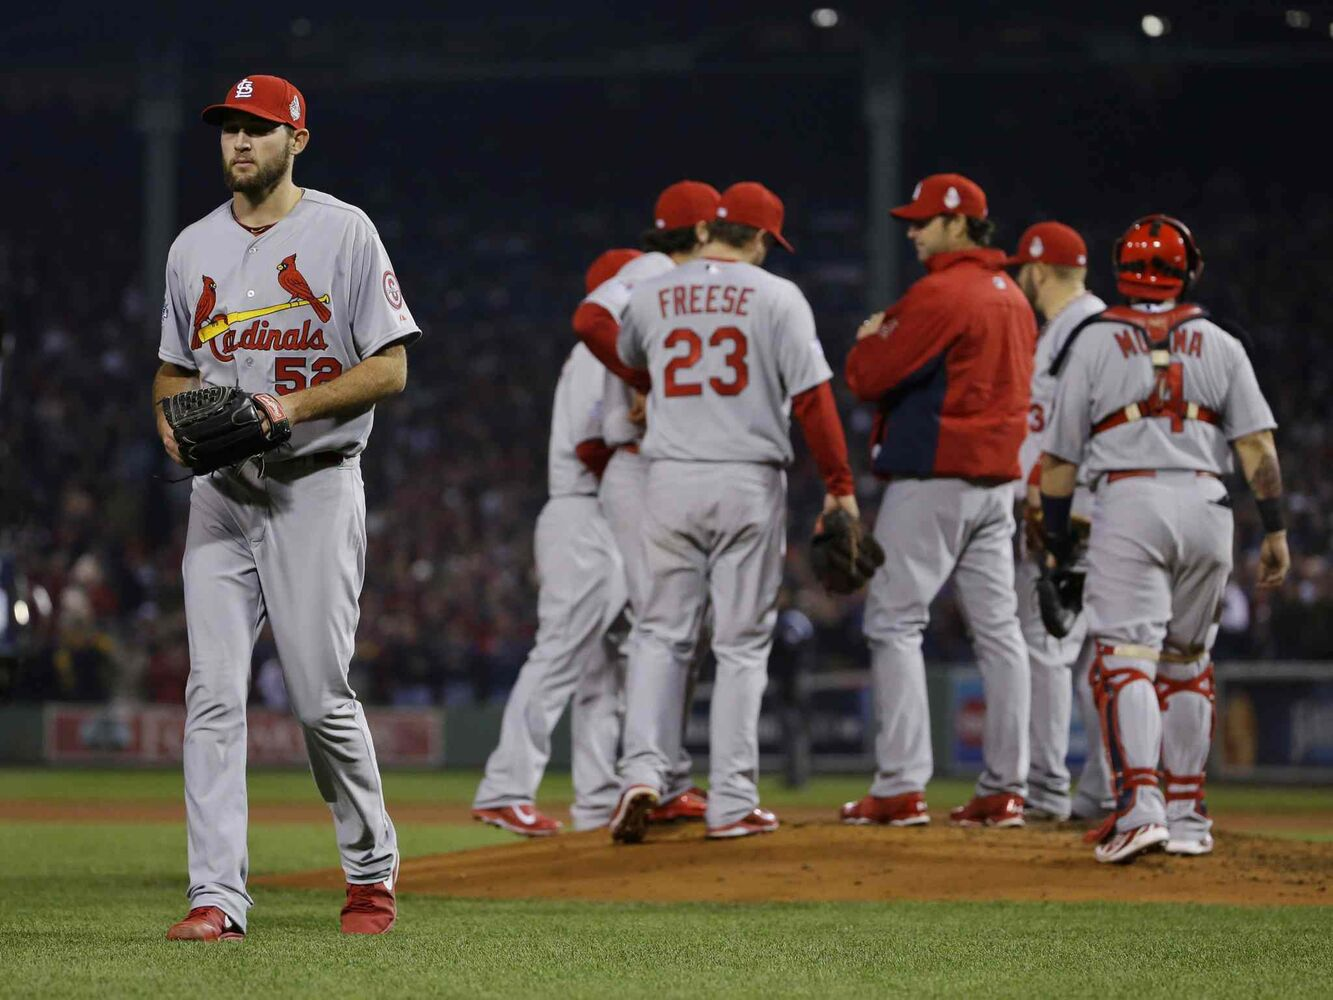 St. Louis Cardinals starting pitcher Michael Wacha walks off the field after being taken out of the game during the fourth inning. (Matt Slocum / The Associated Press)